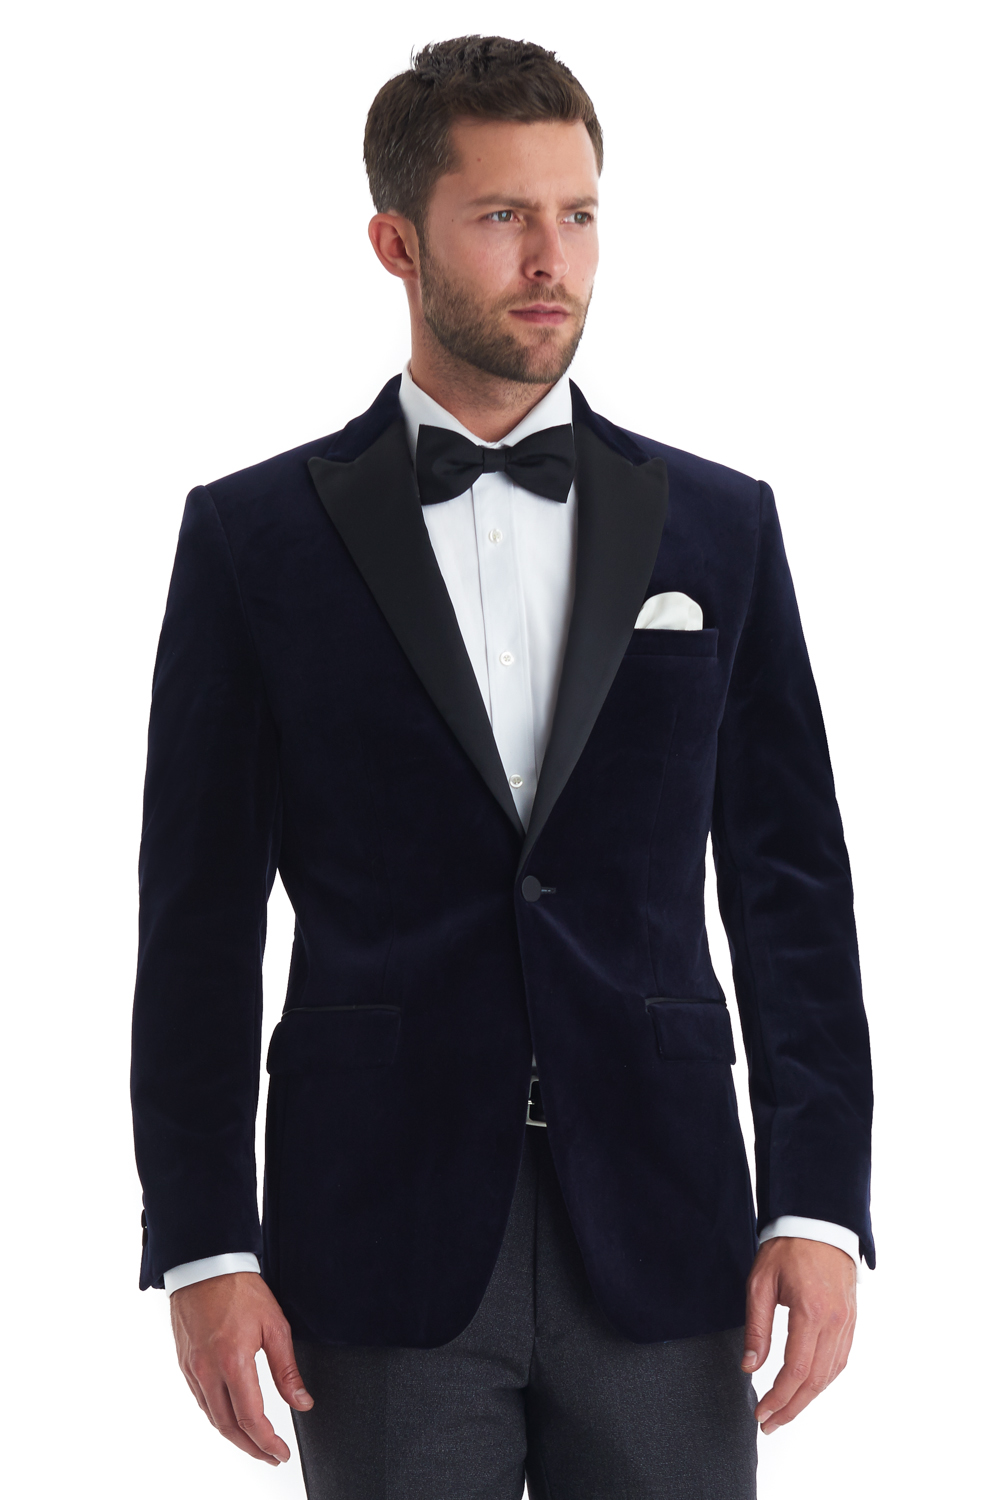 Sportcoats & Blazers: Free Shipping on orders over $45 at shinobitech.cf - Your Online Sportcoats & Blazers Store! Get 5% in rewards with Club O! Ferrecci Men's ENZO Viscose and Polyester Velvet Slim-fit Shawl-collared Tuxedo Blazer. Free Shipping & Returns with Club O Gold* 9 Reviews. Verno Men's Navy and Light Blue Wide Herringbone.